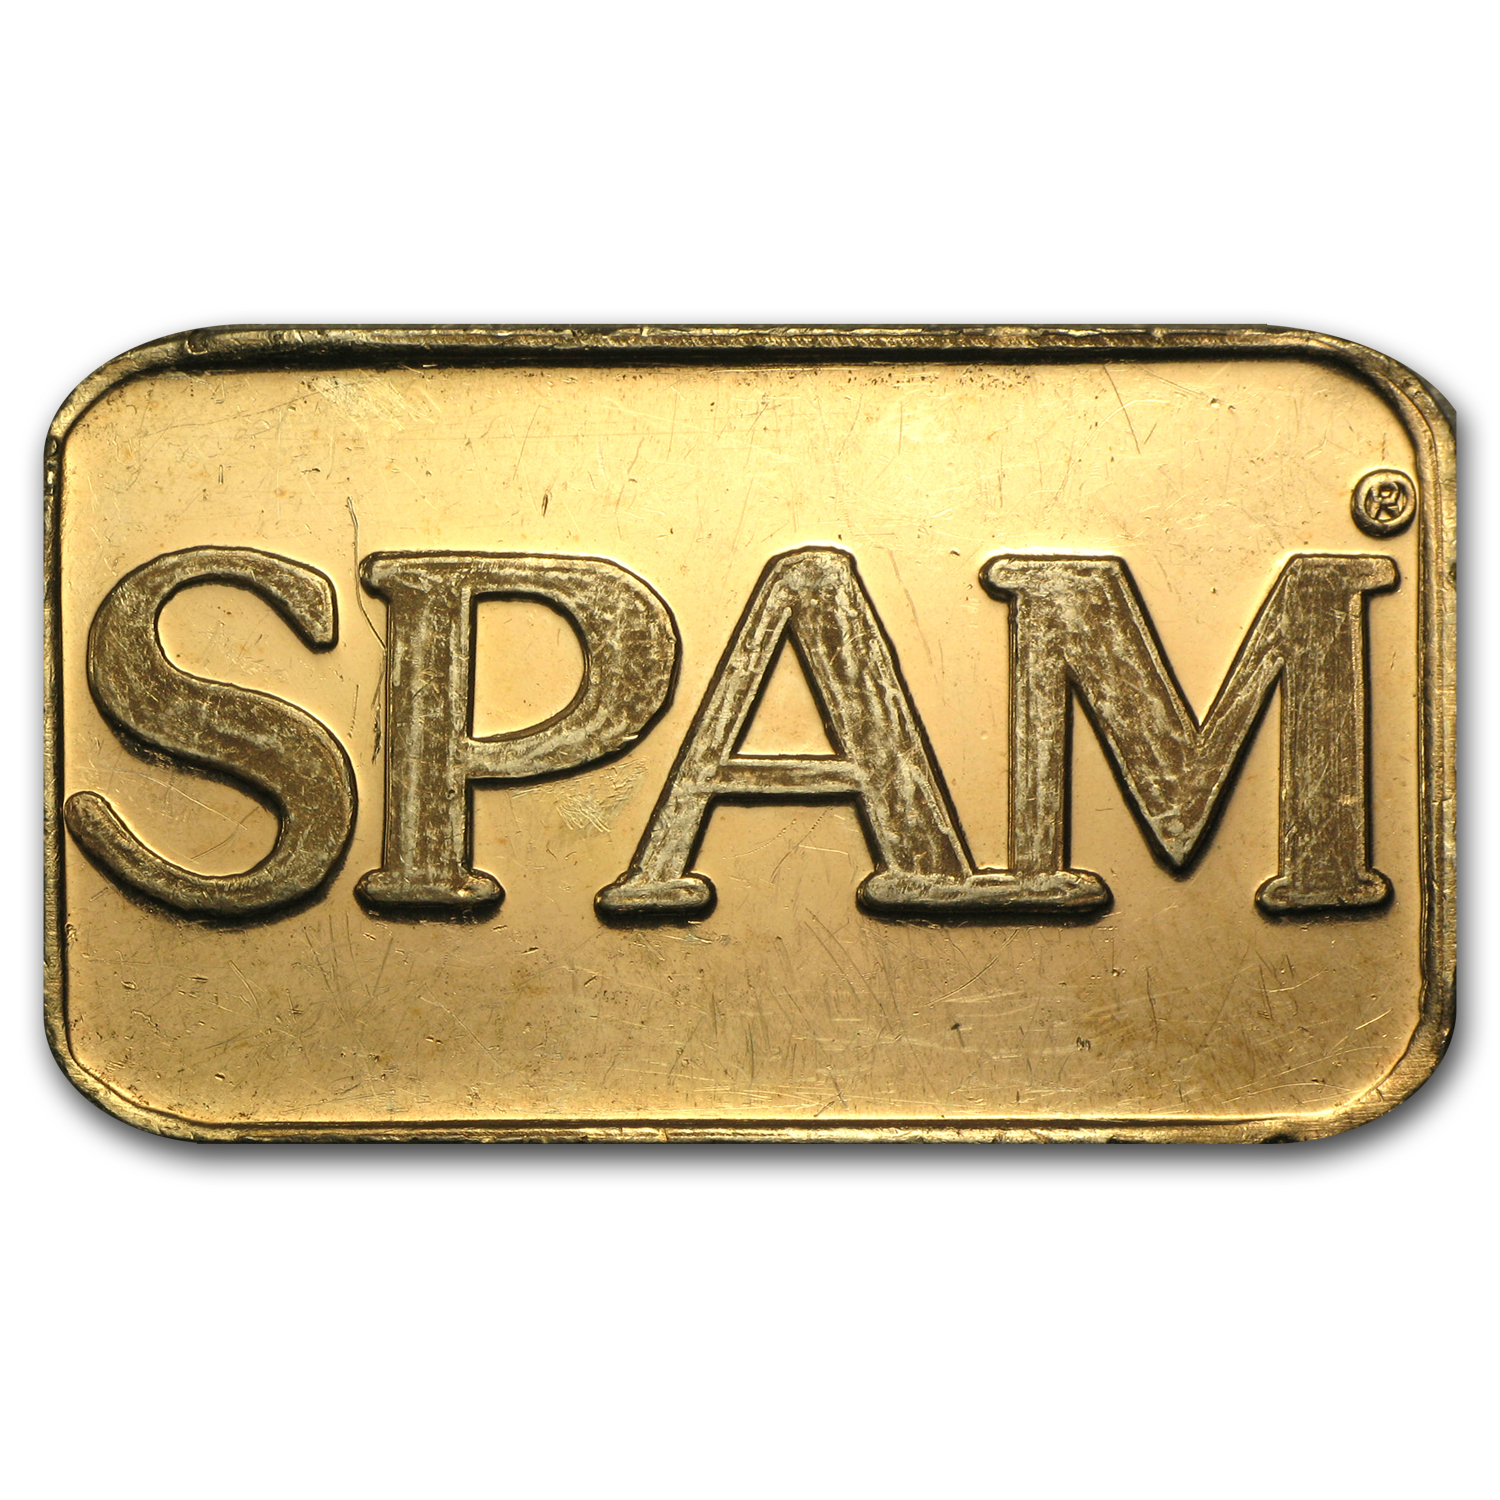 1 oz Silver Bars - SPAM